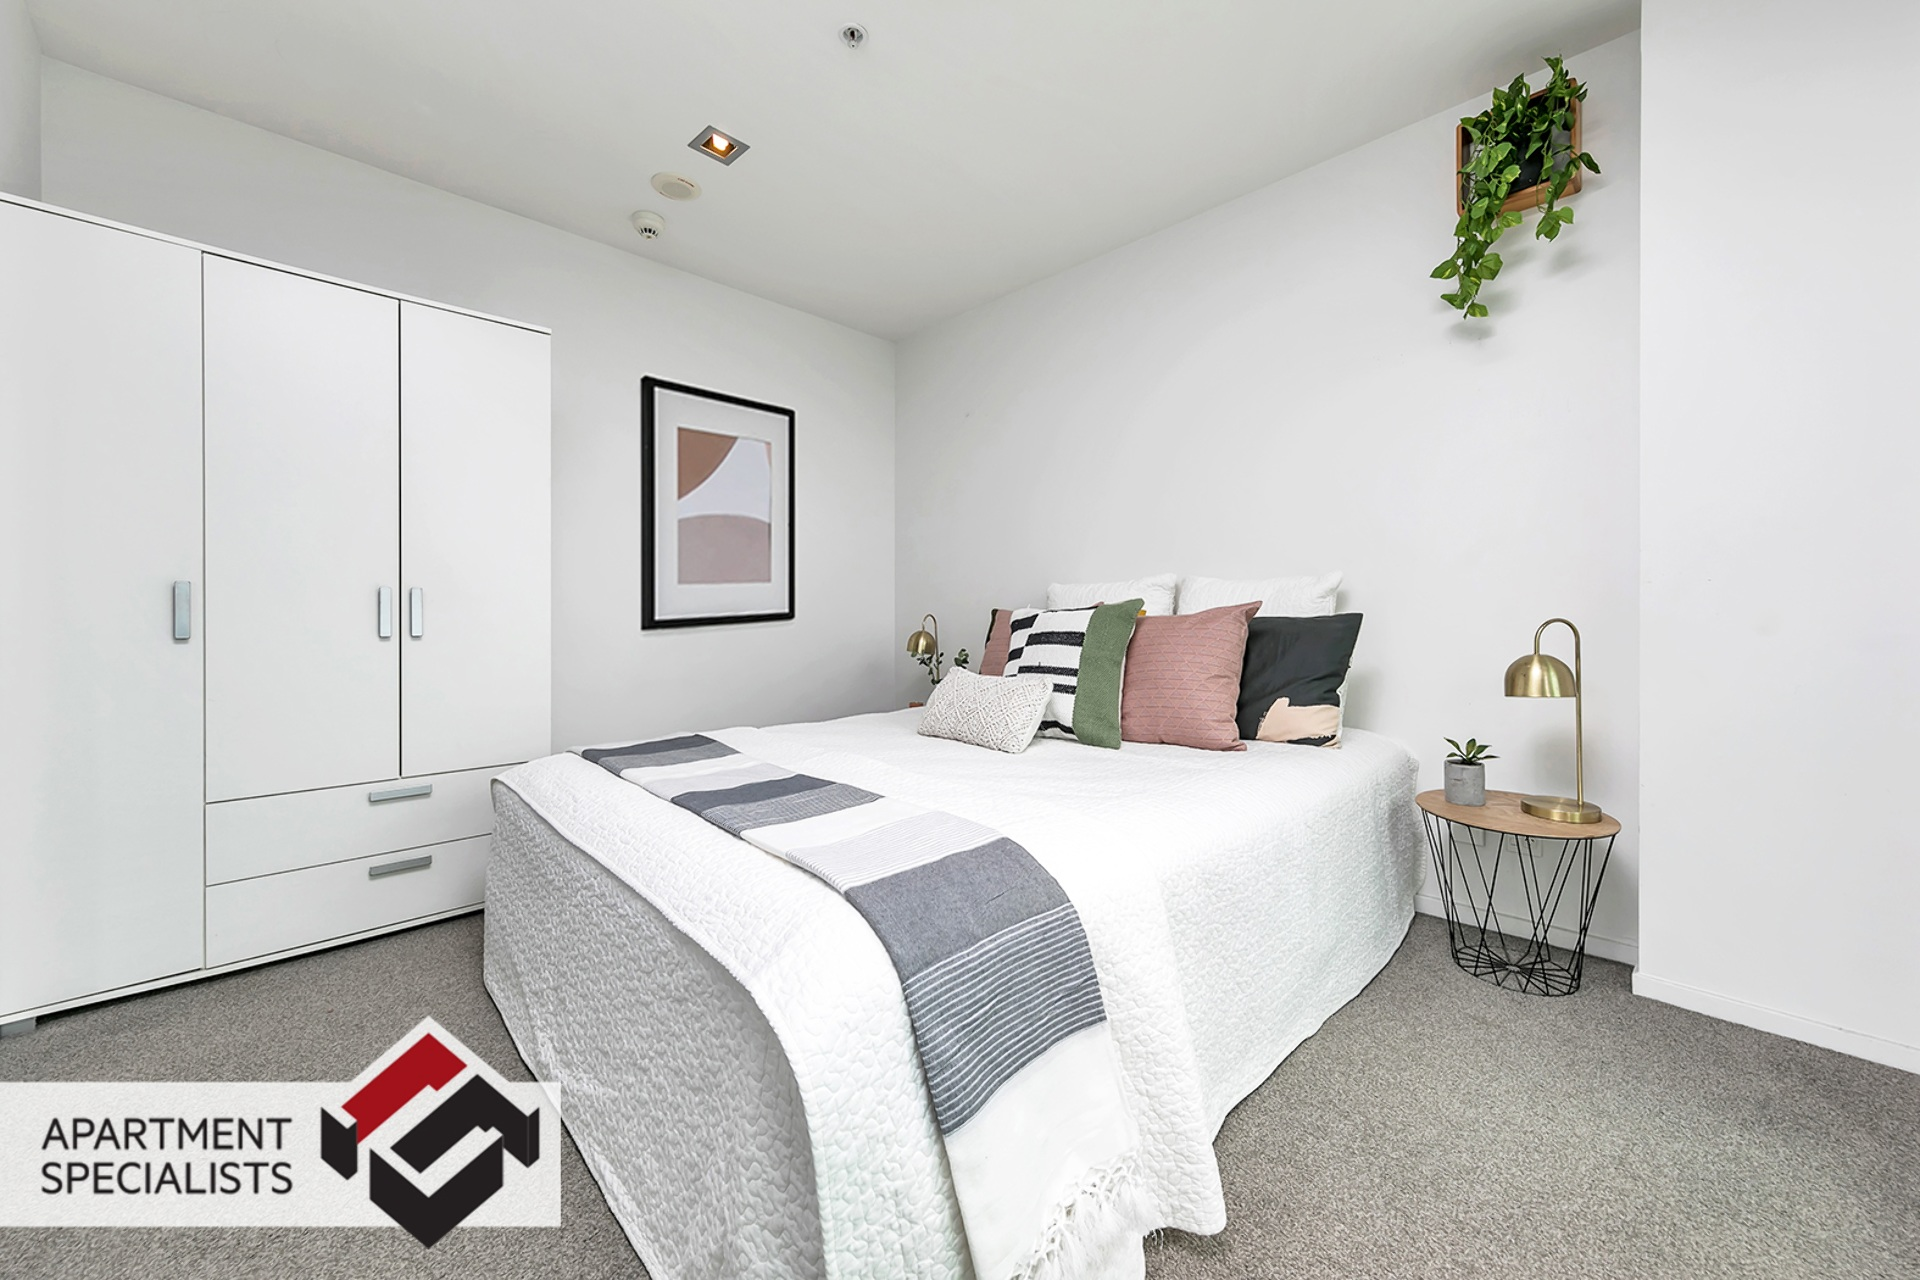 11 | 85 Beach Road, City Centre | Apartment Specialists